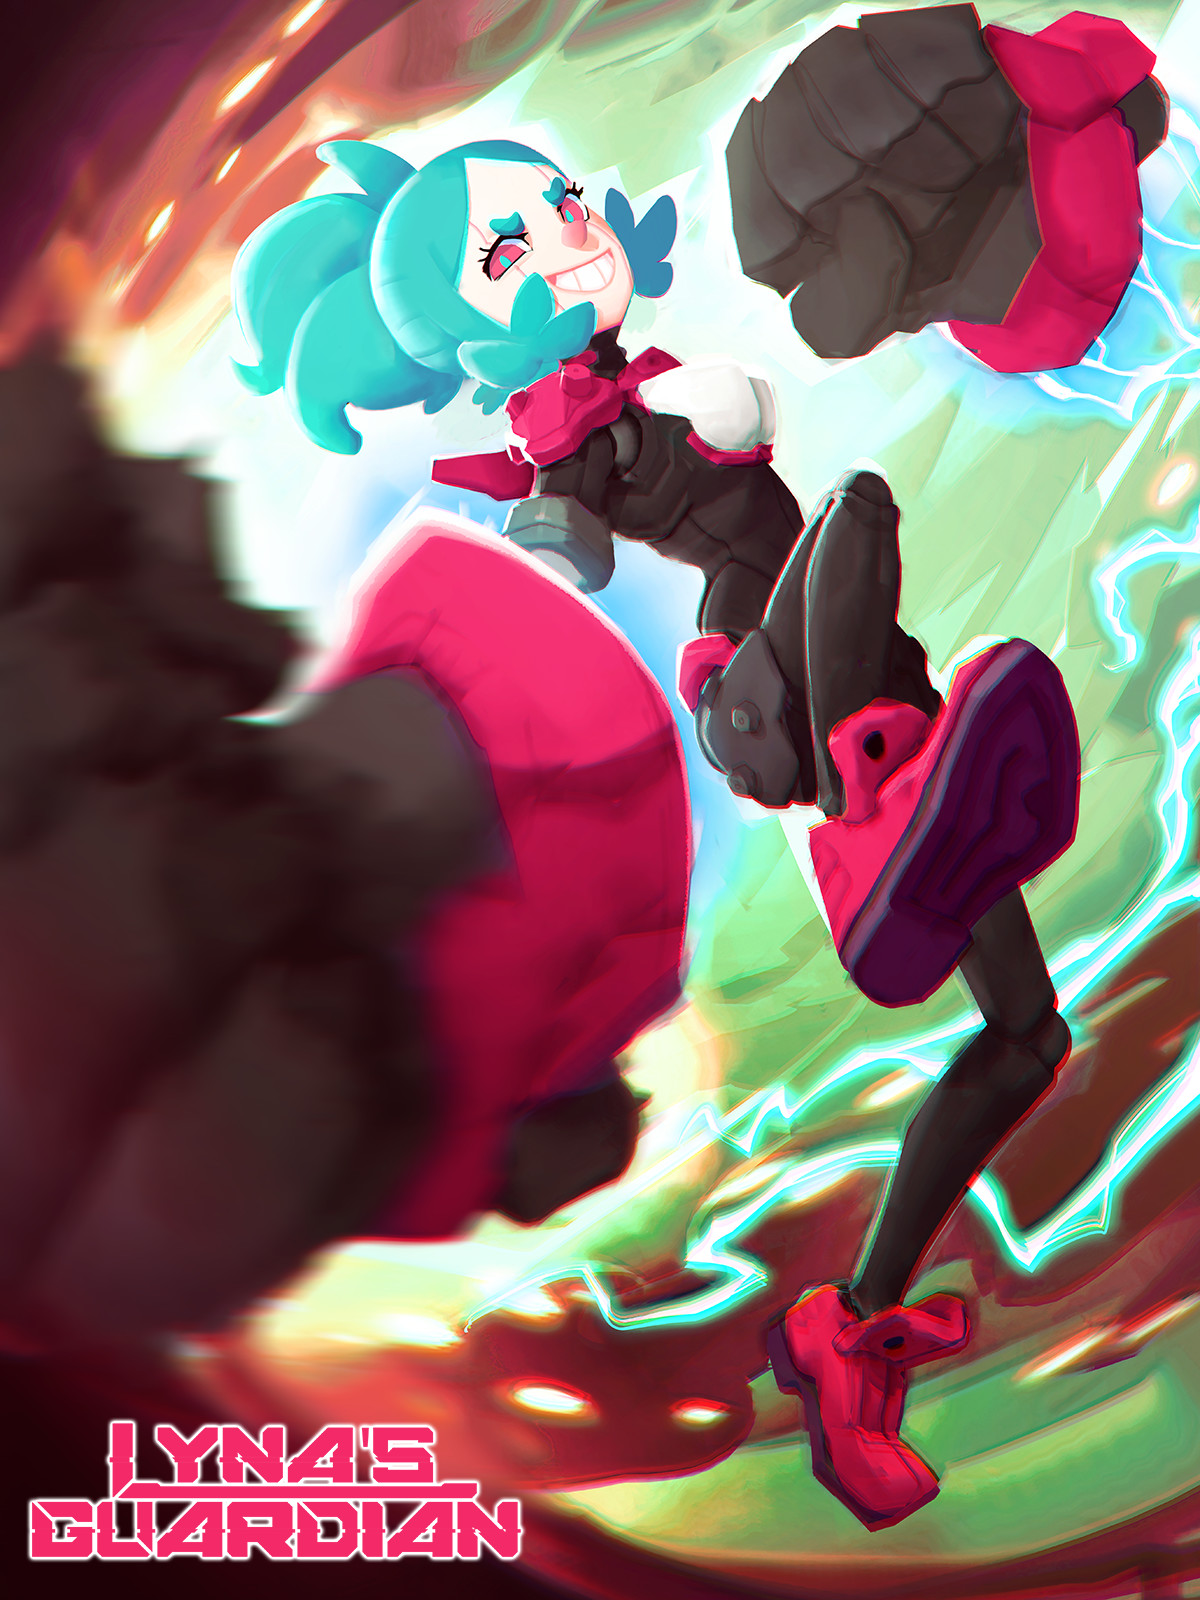 Alexis rives key art retouche 1calque